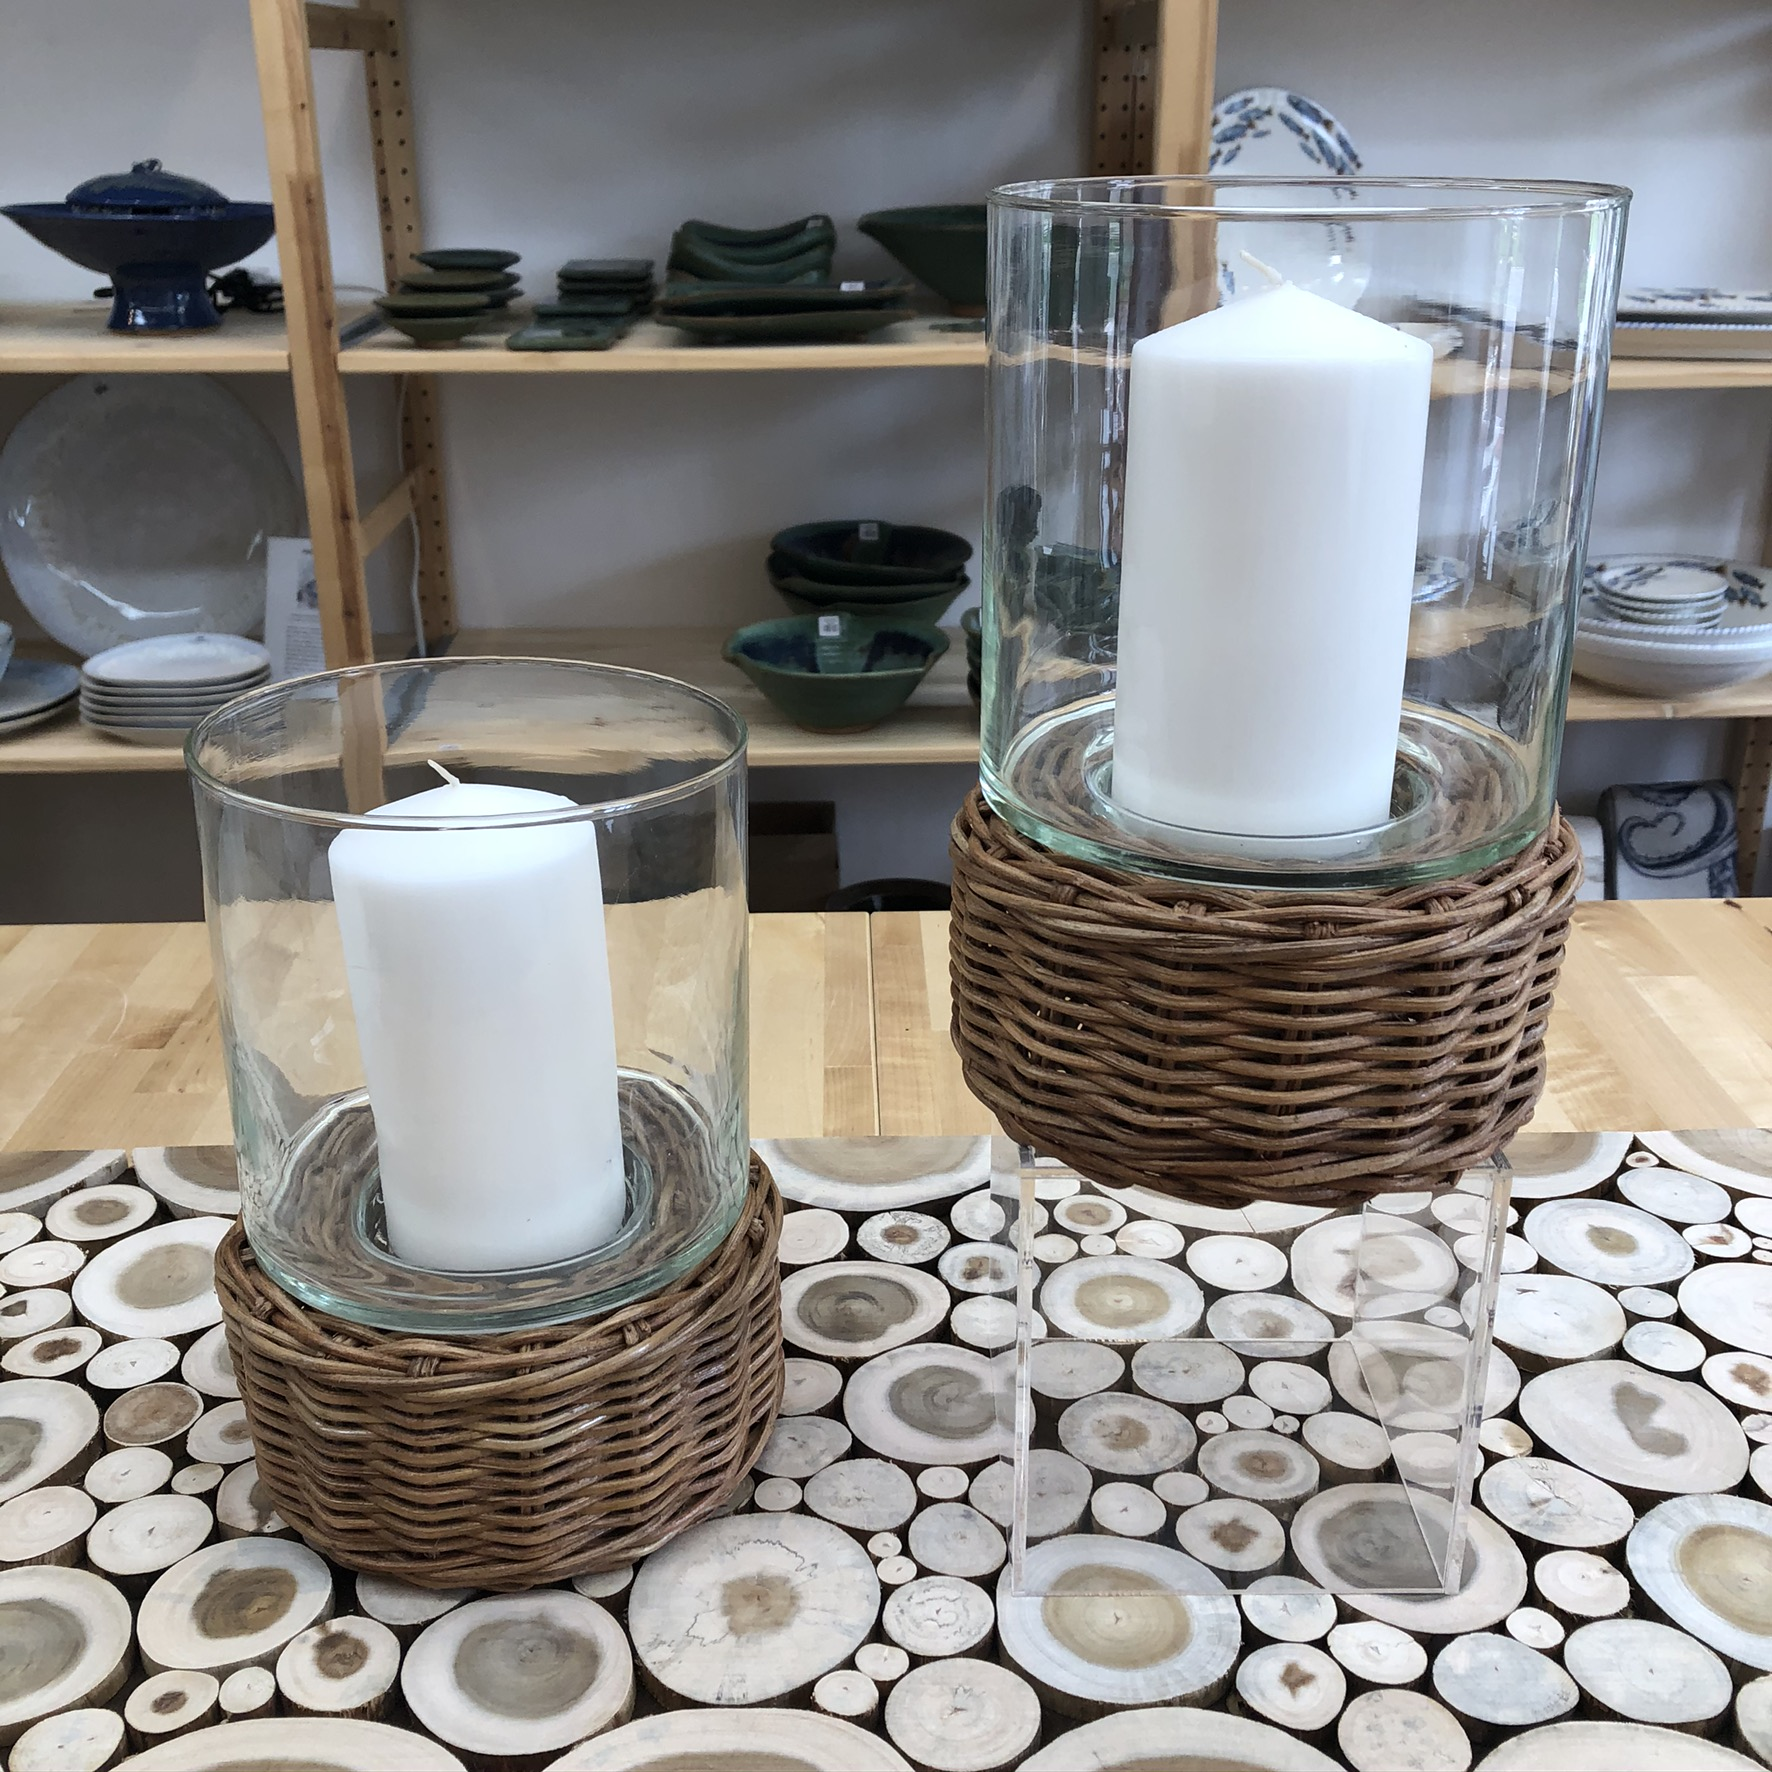 two candle holders - one on a platform, one on table